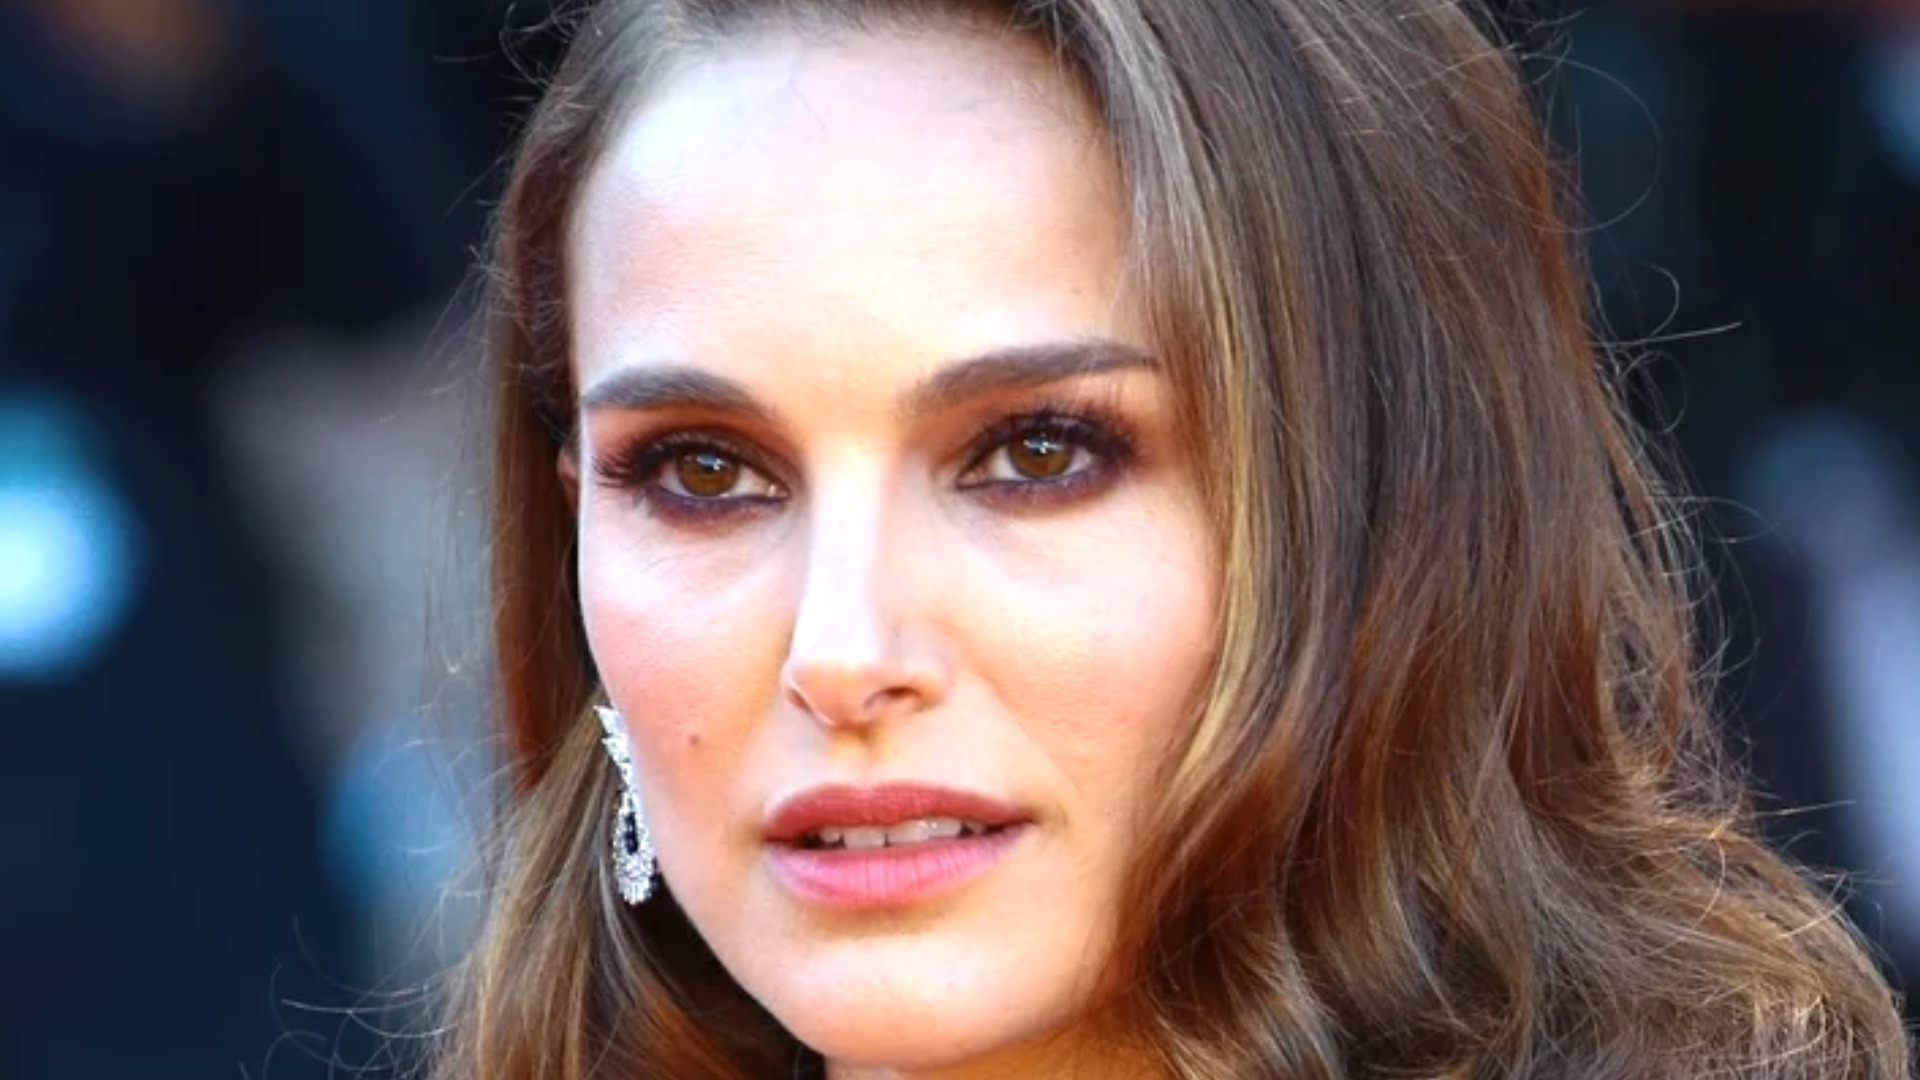 The Iconic Sci-Fi Blockbuster That Almost Ruined Natalie Portman's Career